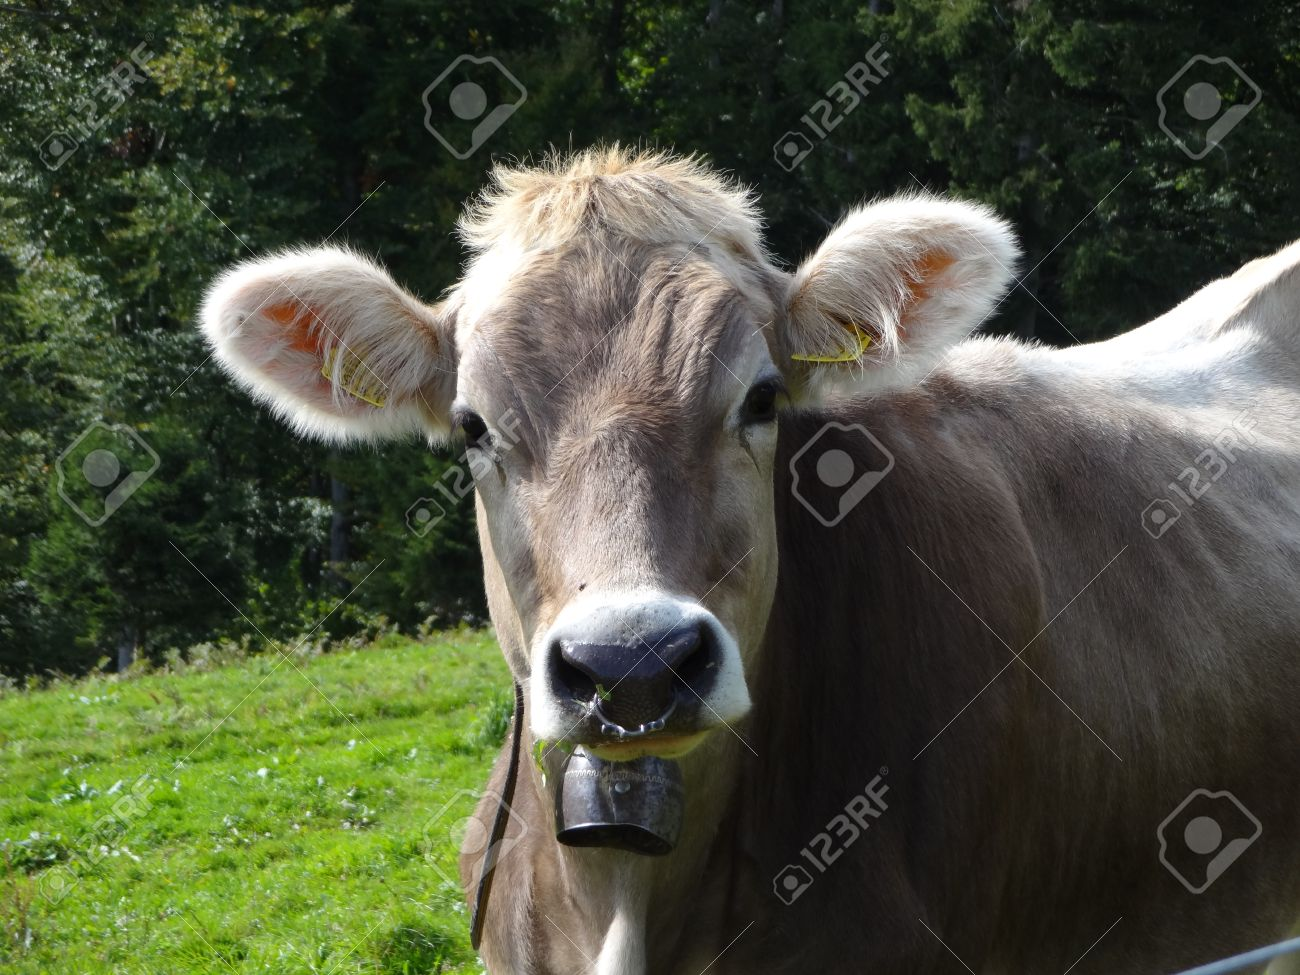 Cattle Portrait With Bell And Nose Ring Stock Photo Picture And